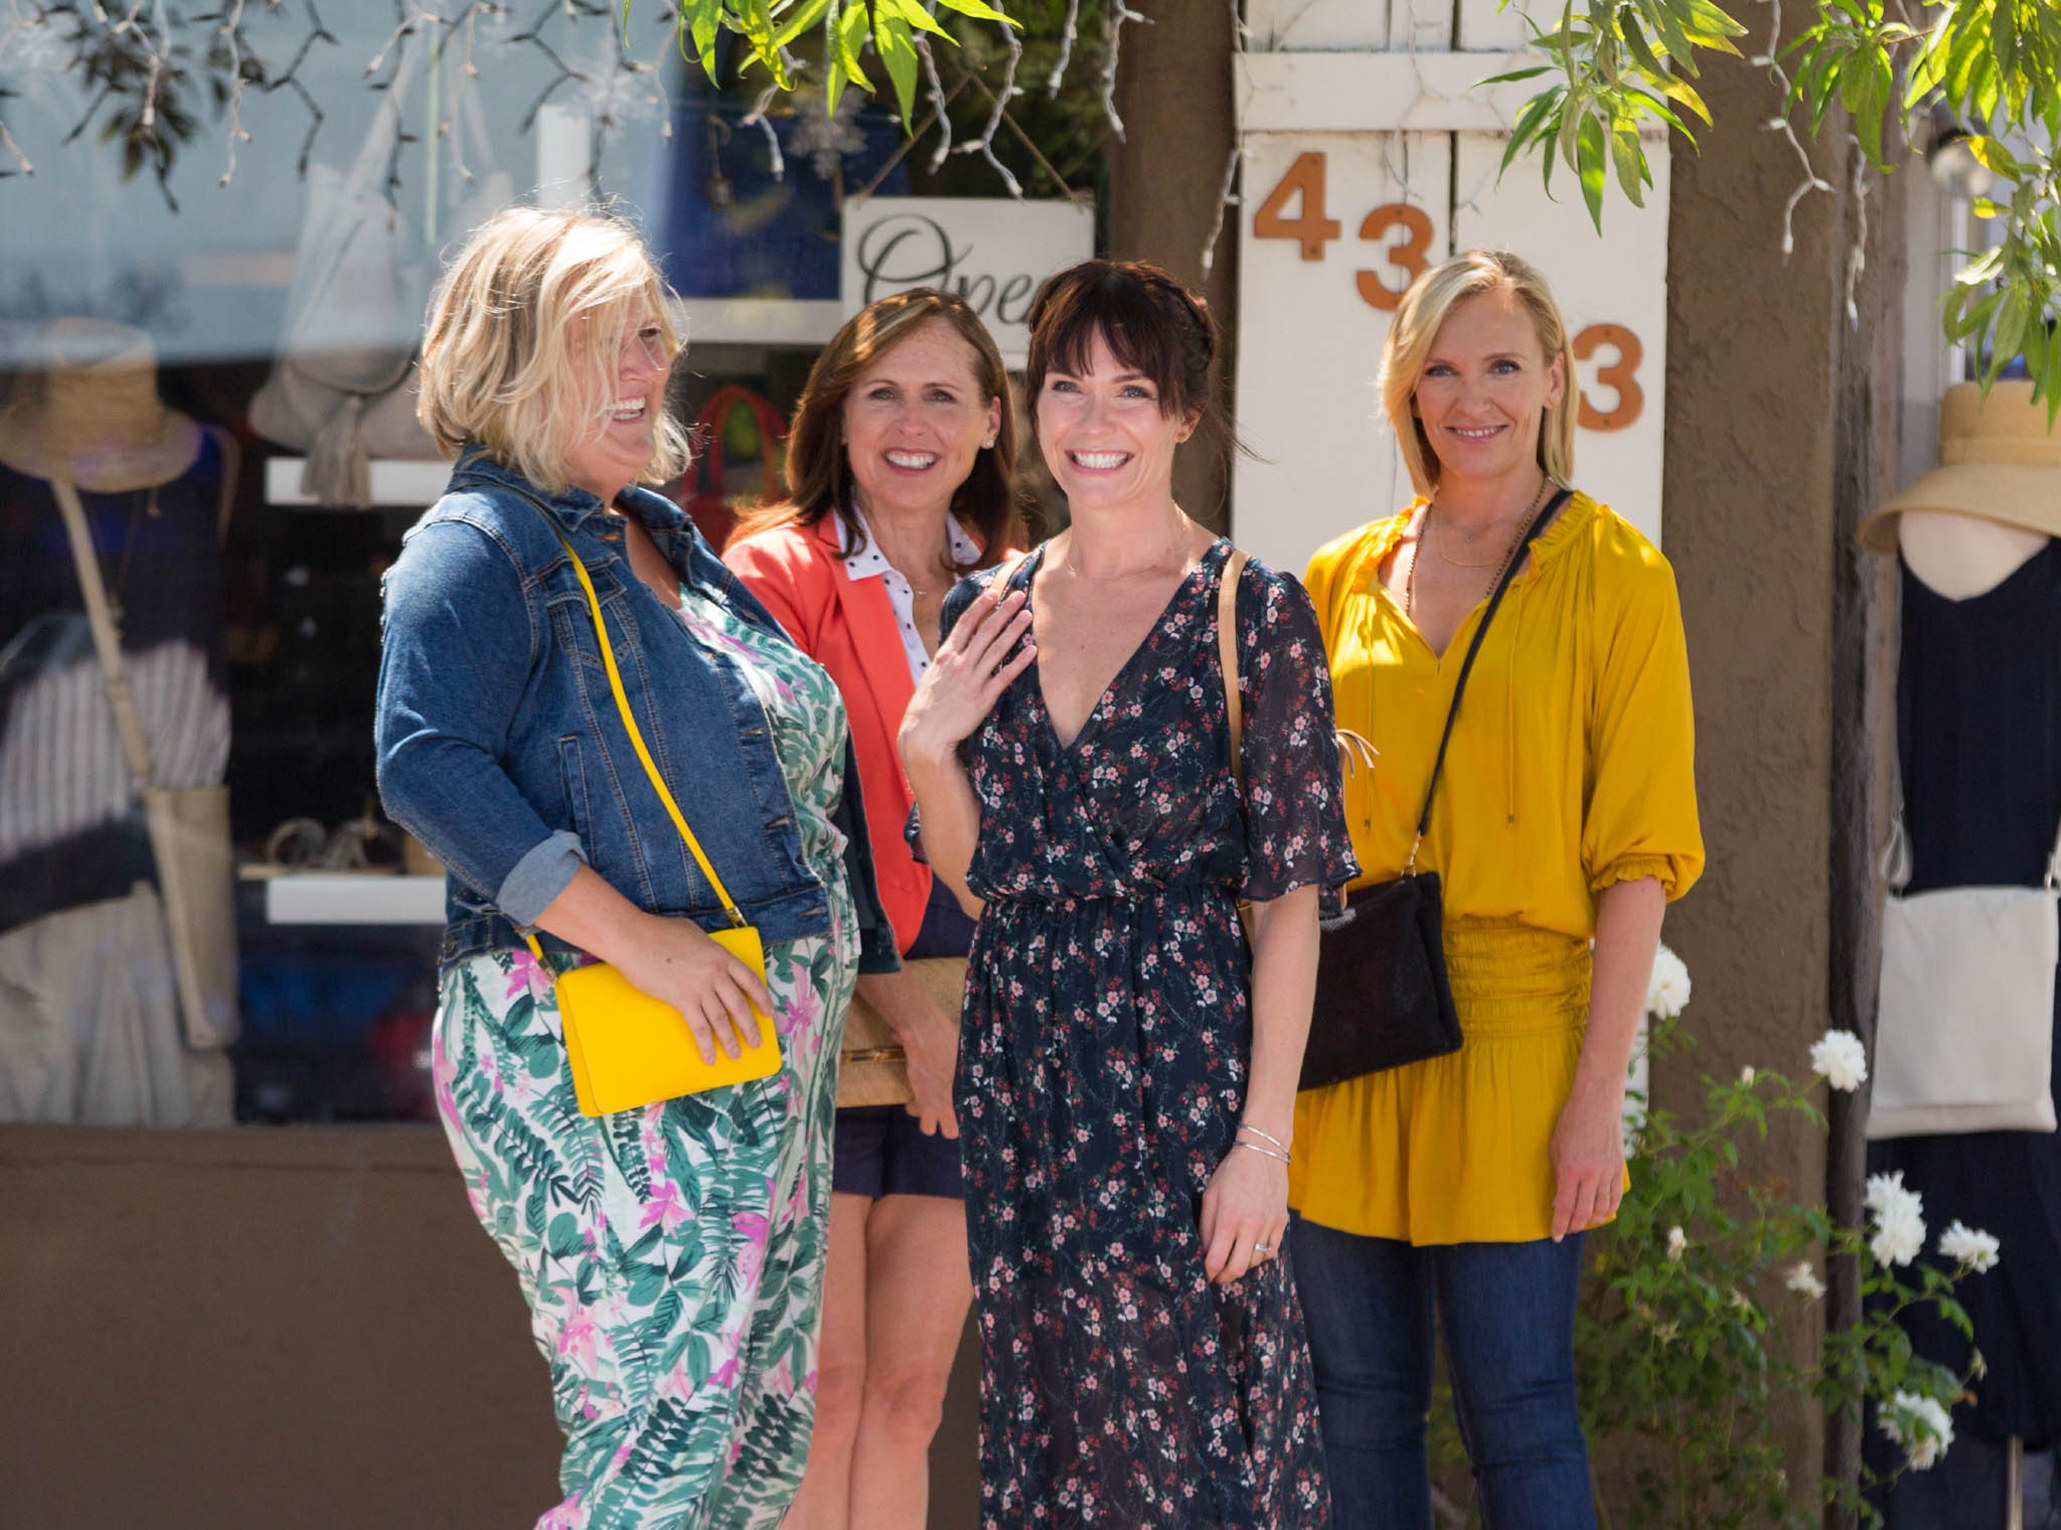 Bridget Everett, Molly Shannon, Katie Aselton, and Toni Collette stand outside a restaurant